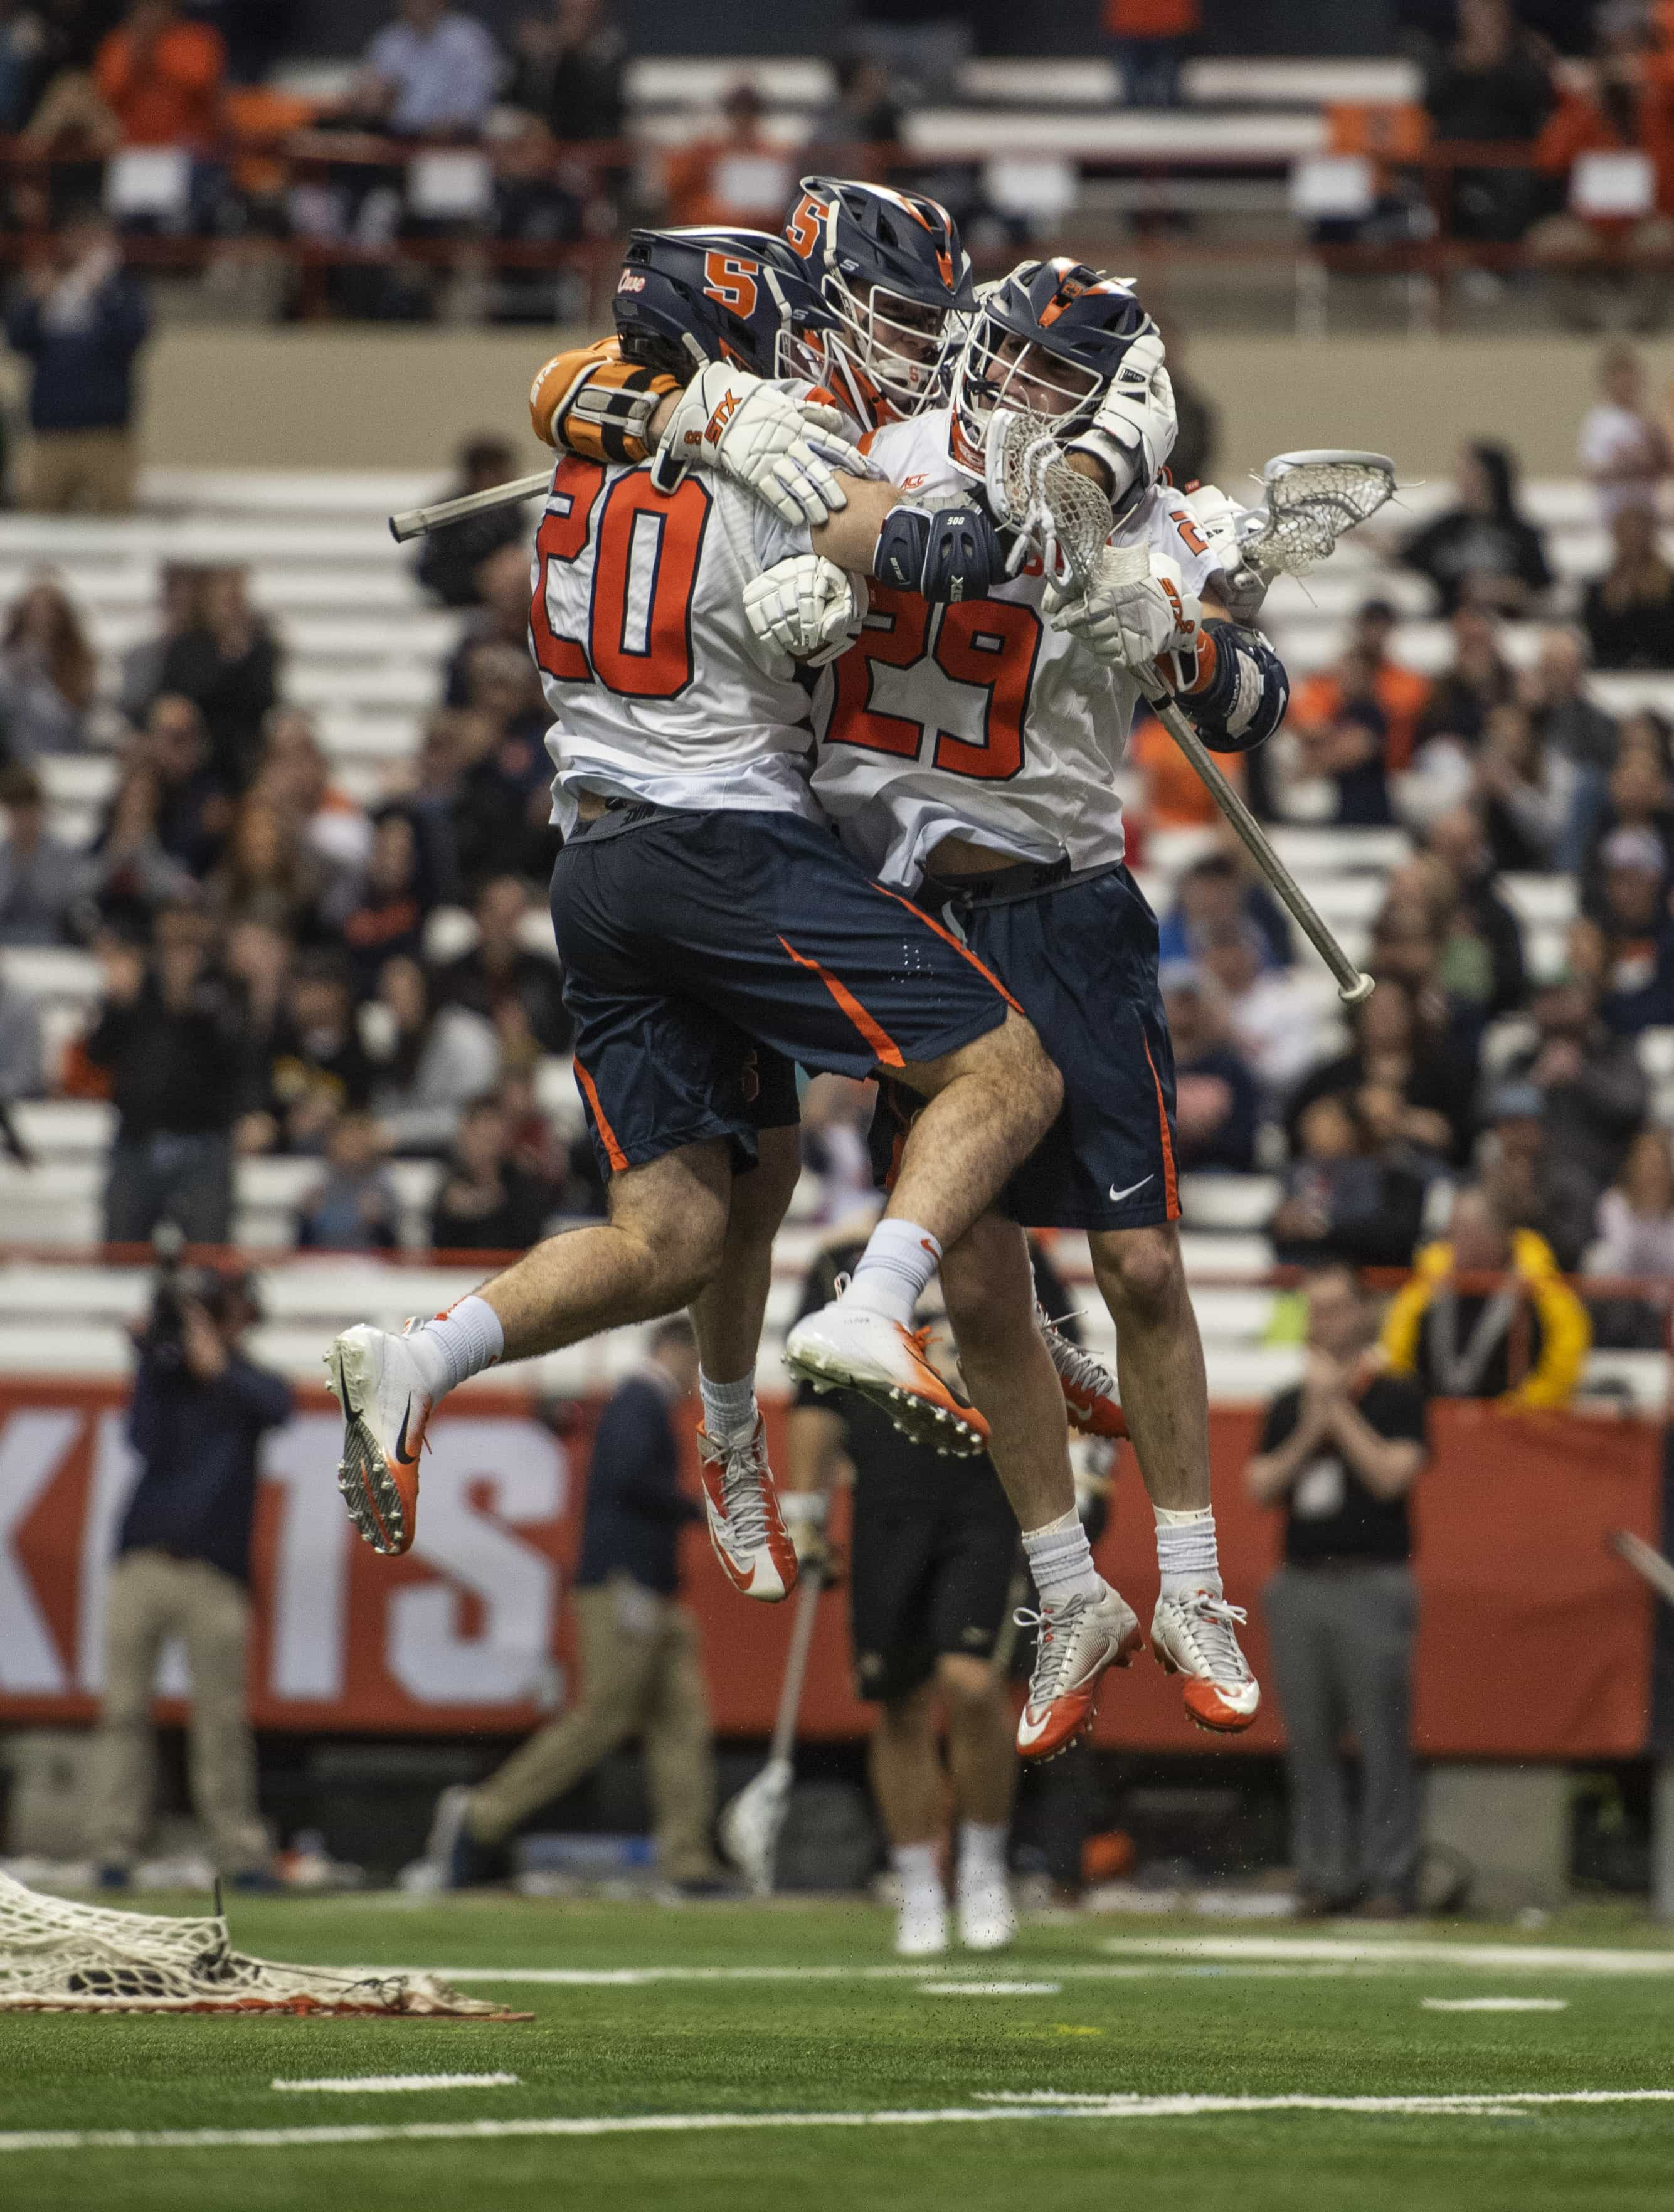 Syracuse players celebrate after scoring the final goal of the 10-8 win over Army.